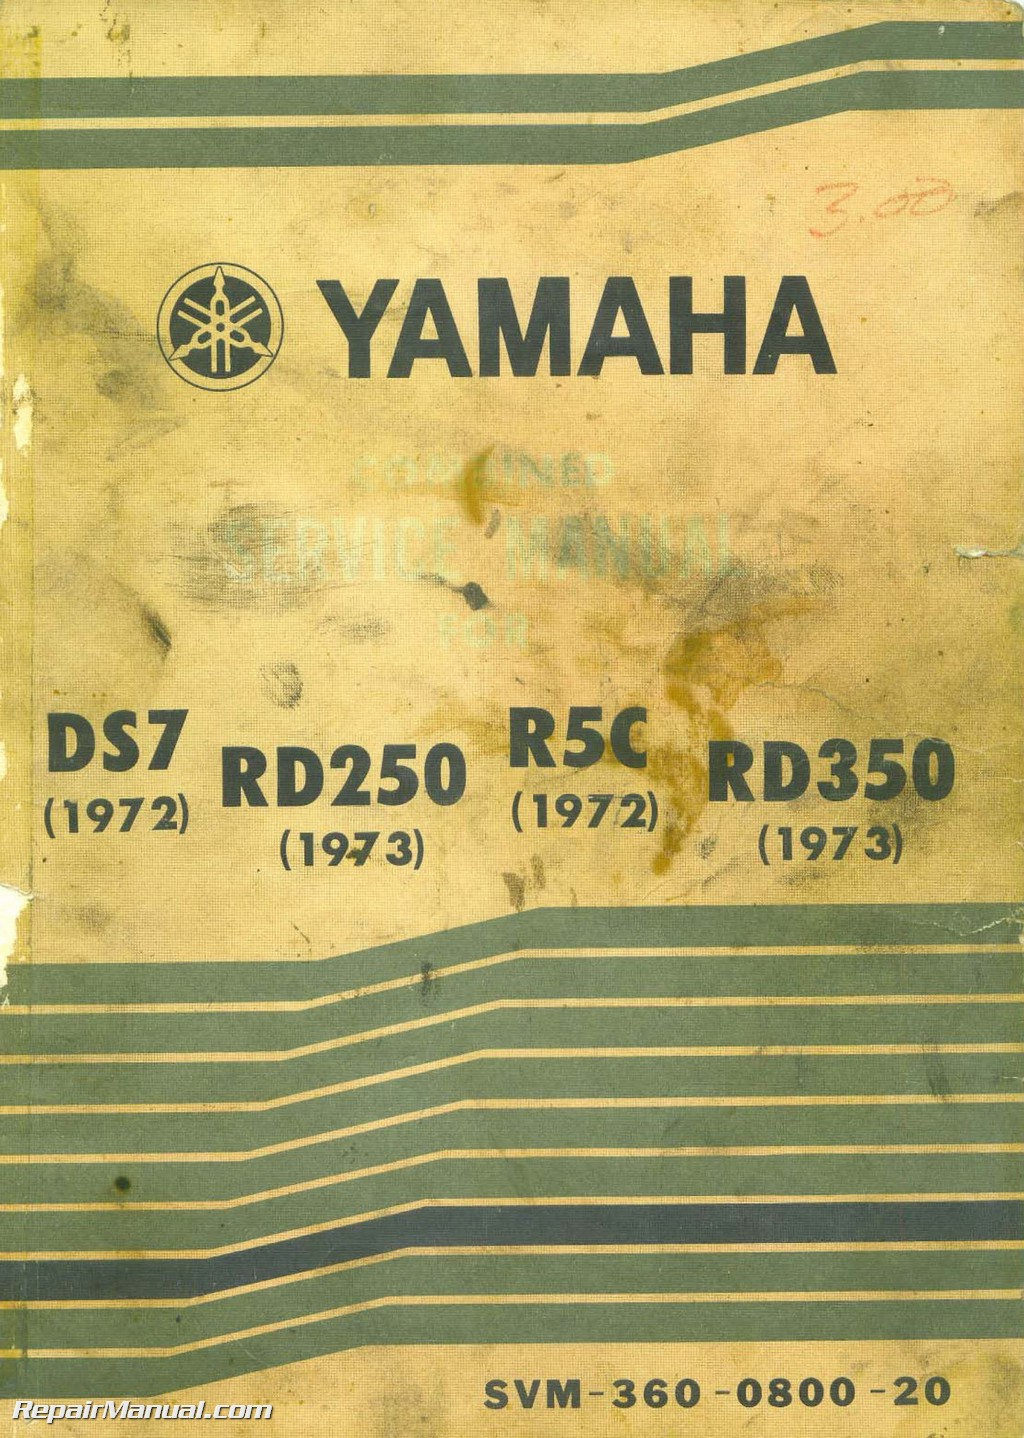 yamaha 1972 ds7 r5c 1973 rd250 rd350 motorcycle service manual rh repairmanual com Yamaha R5 Cafe Racer 1972 DS7 250